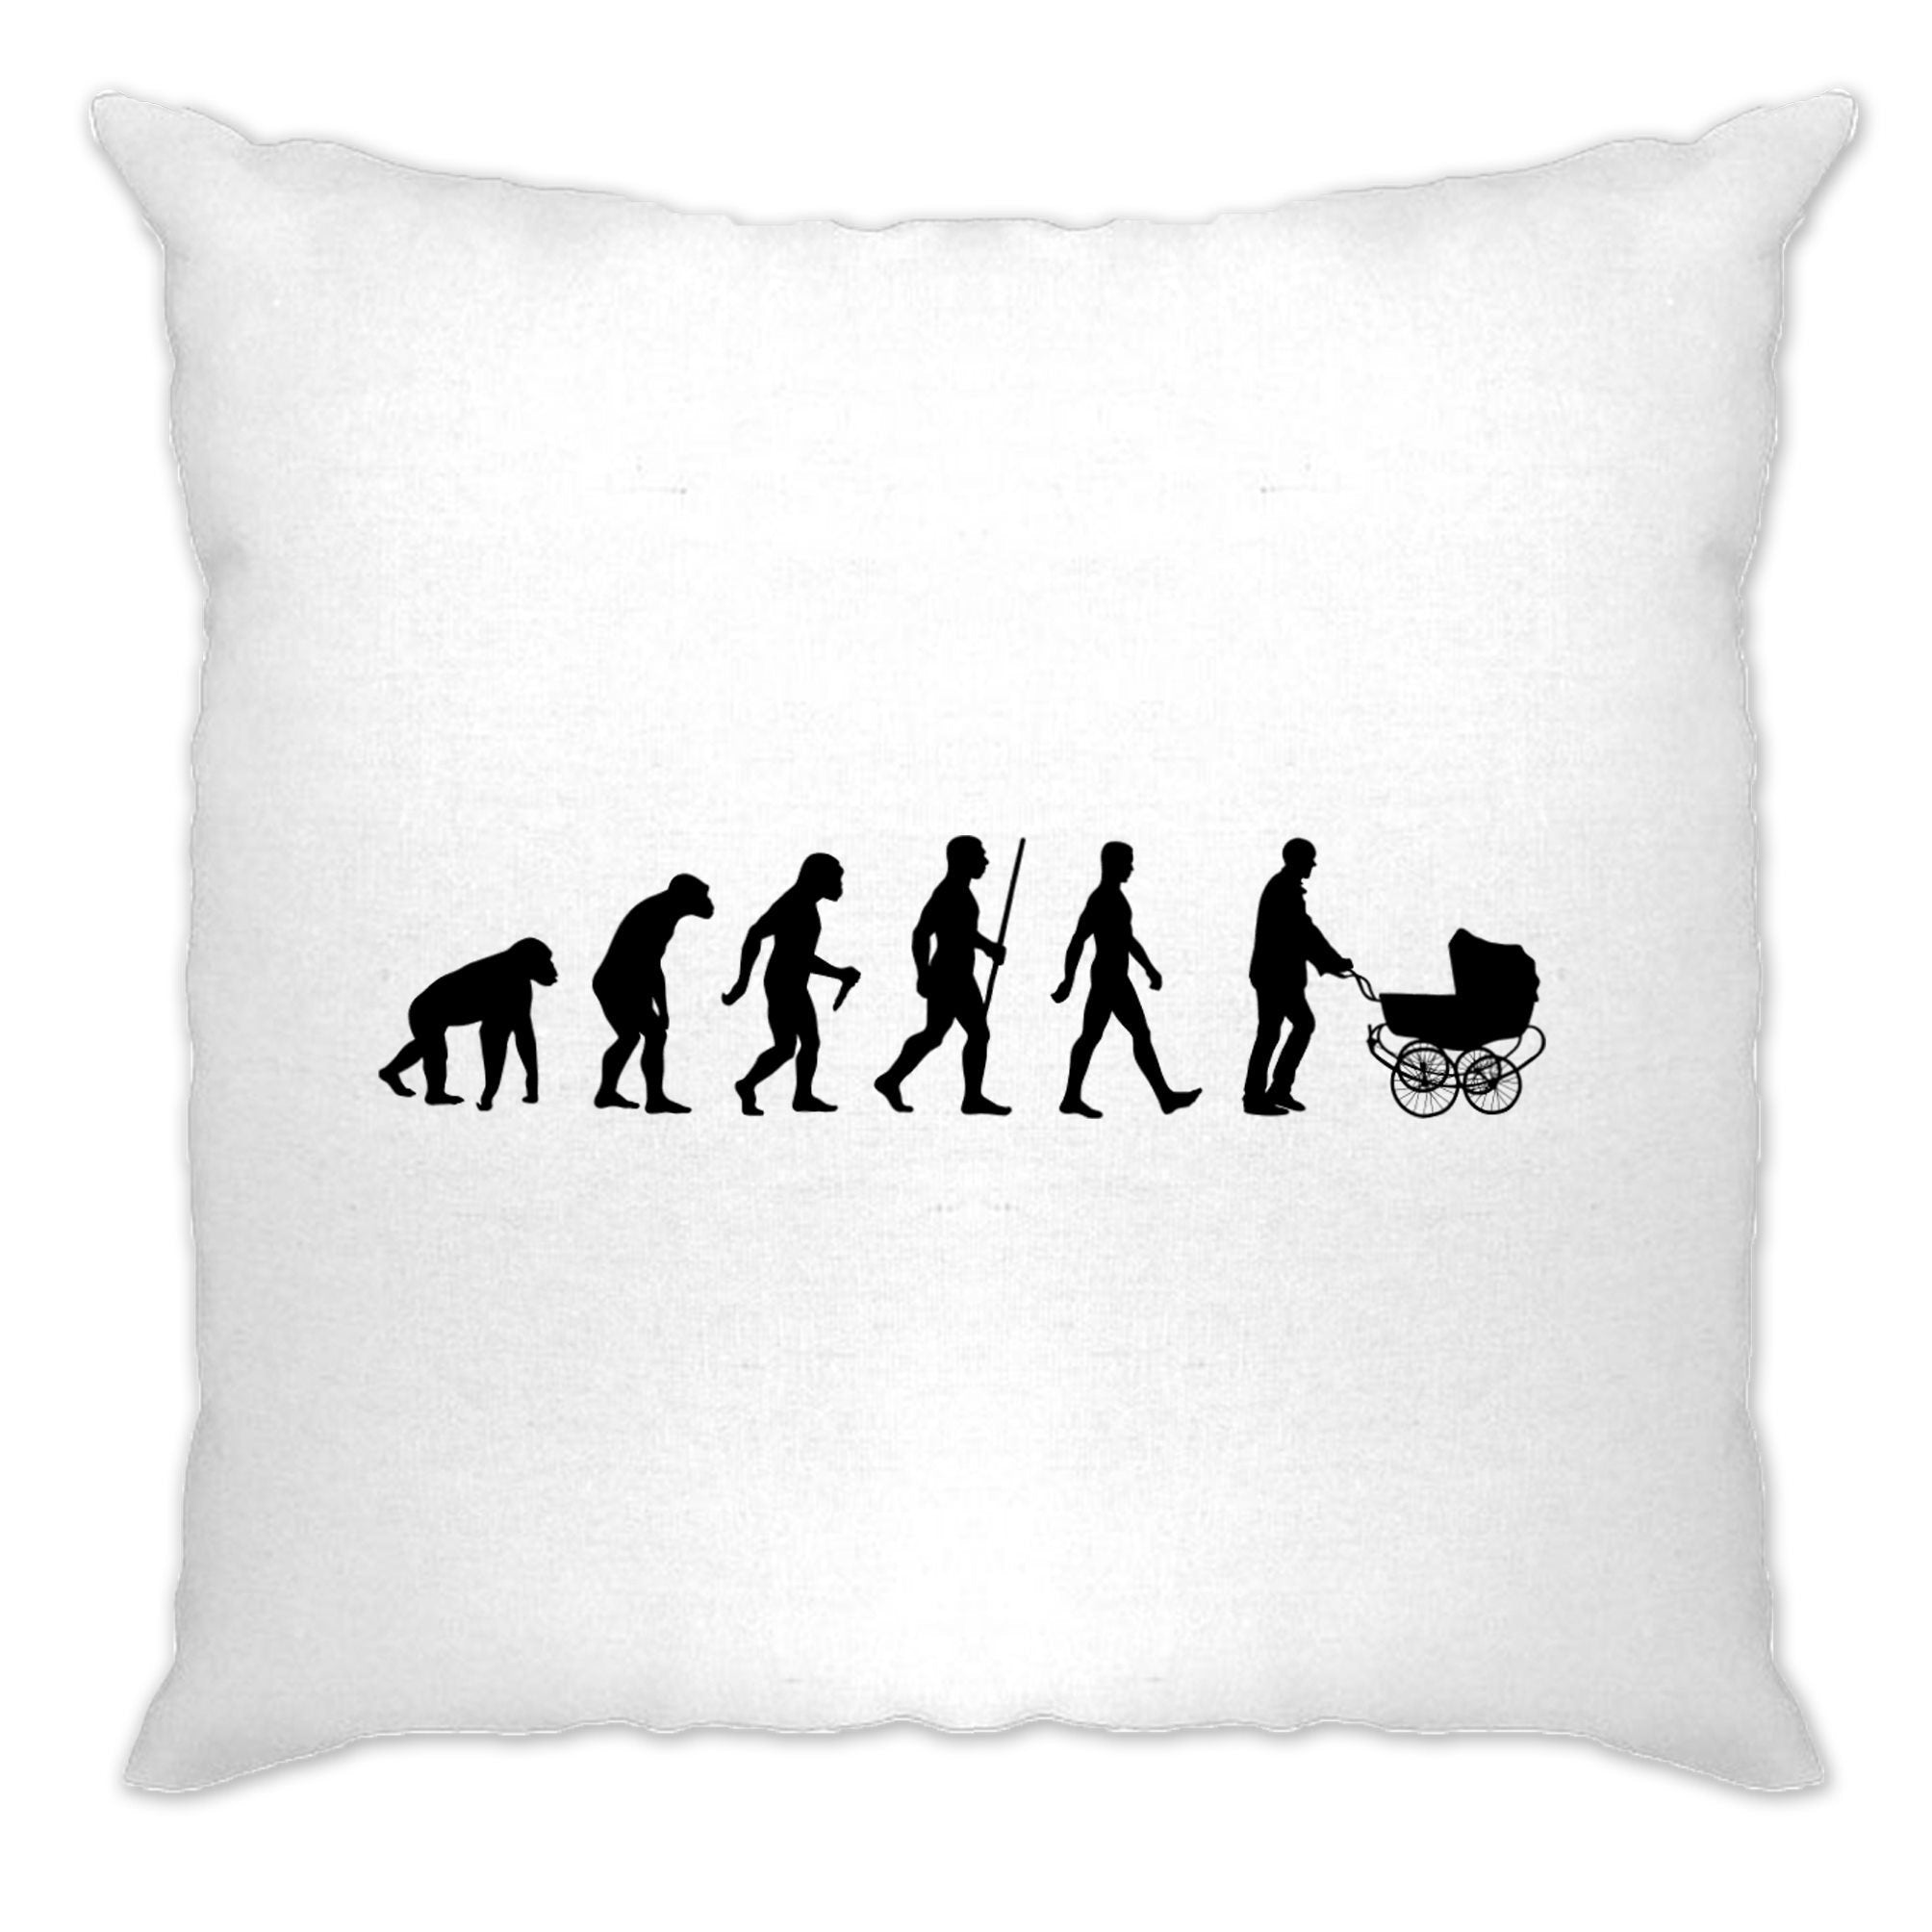 Parenthood Cushion Cover Evolution Of A Family New Born Baby